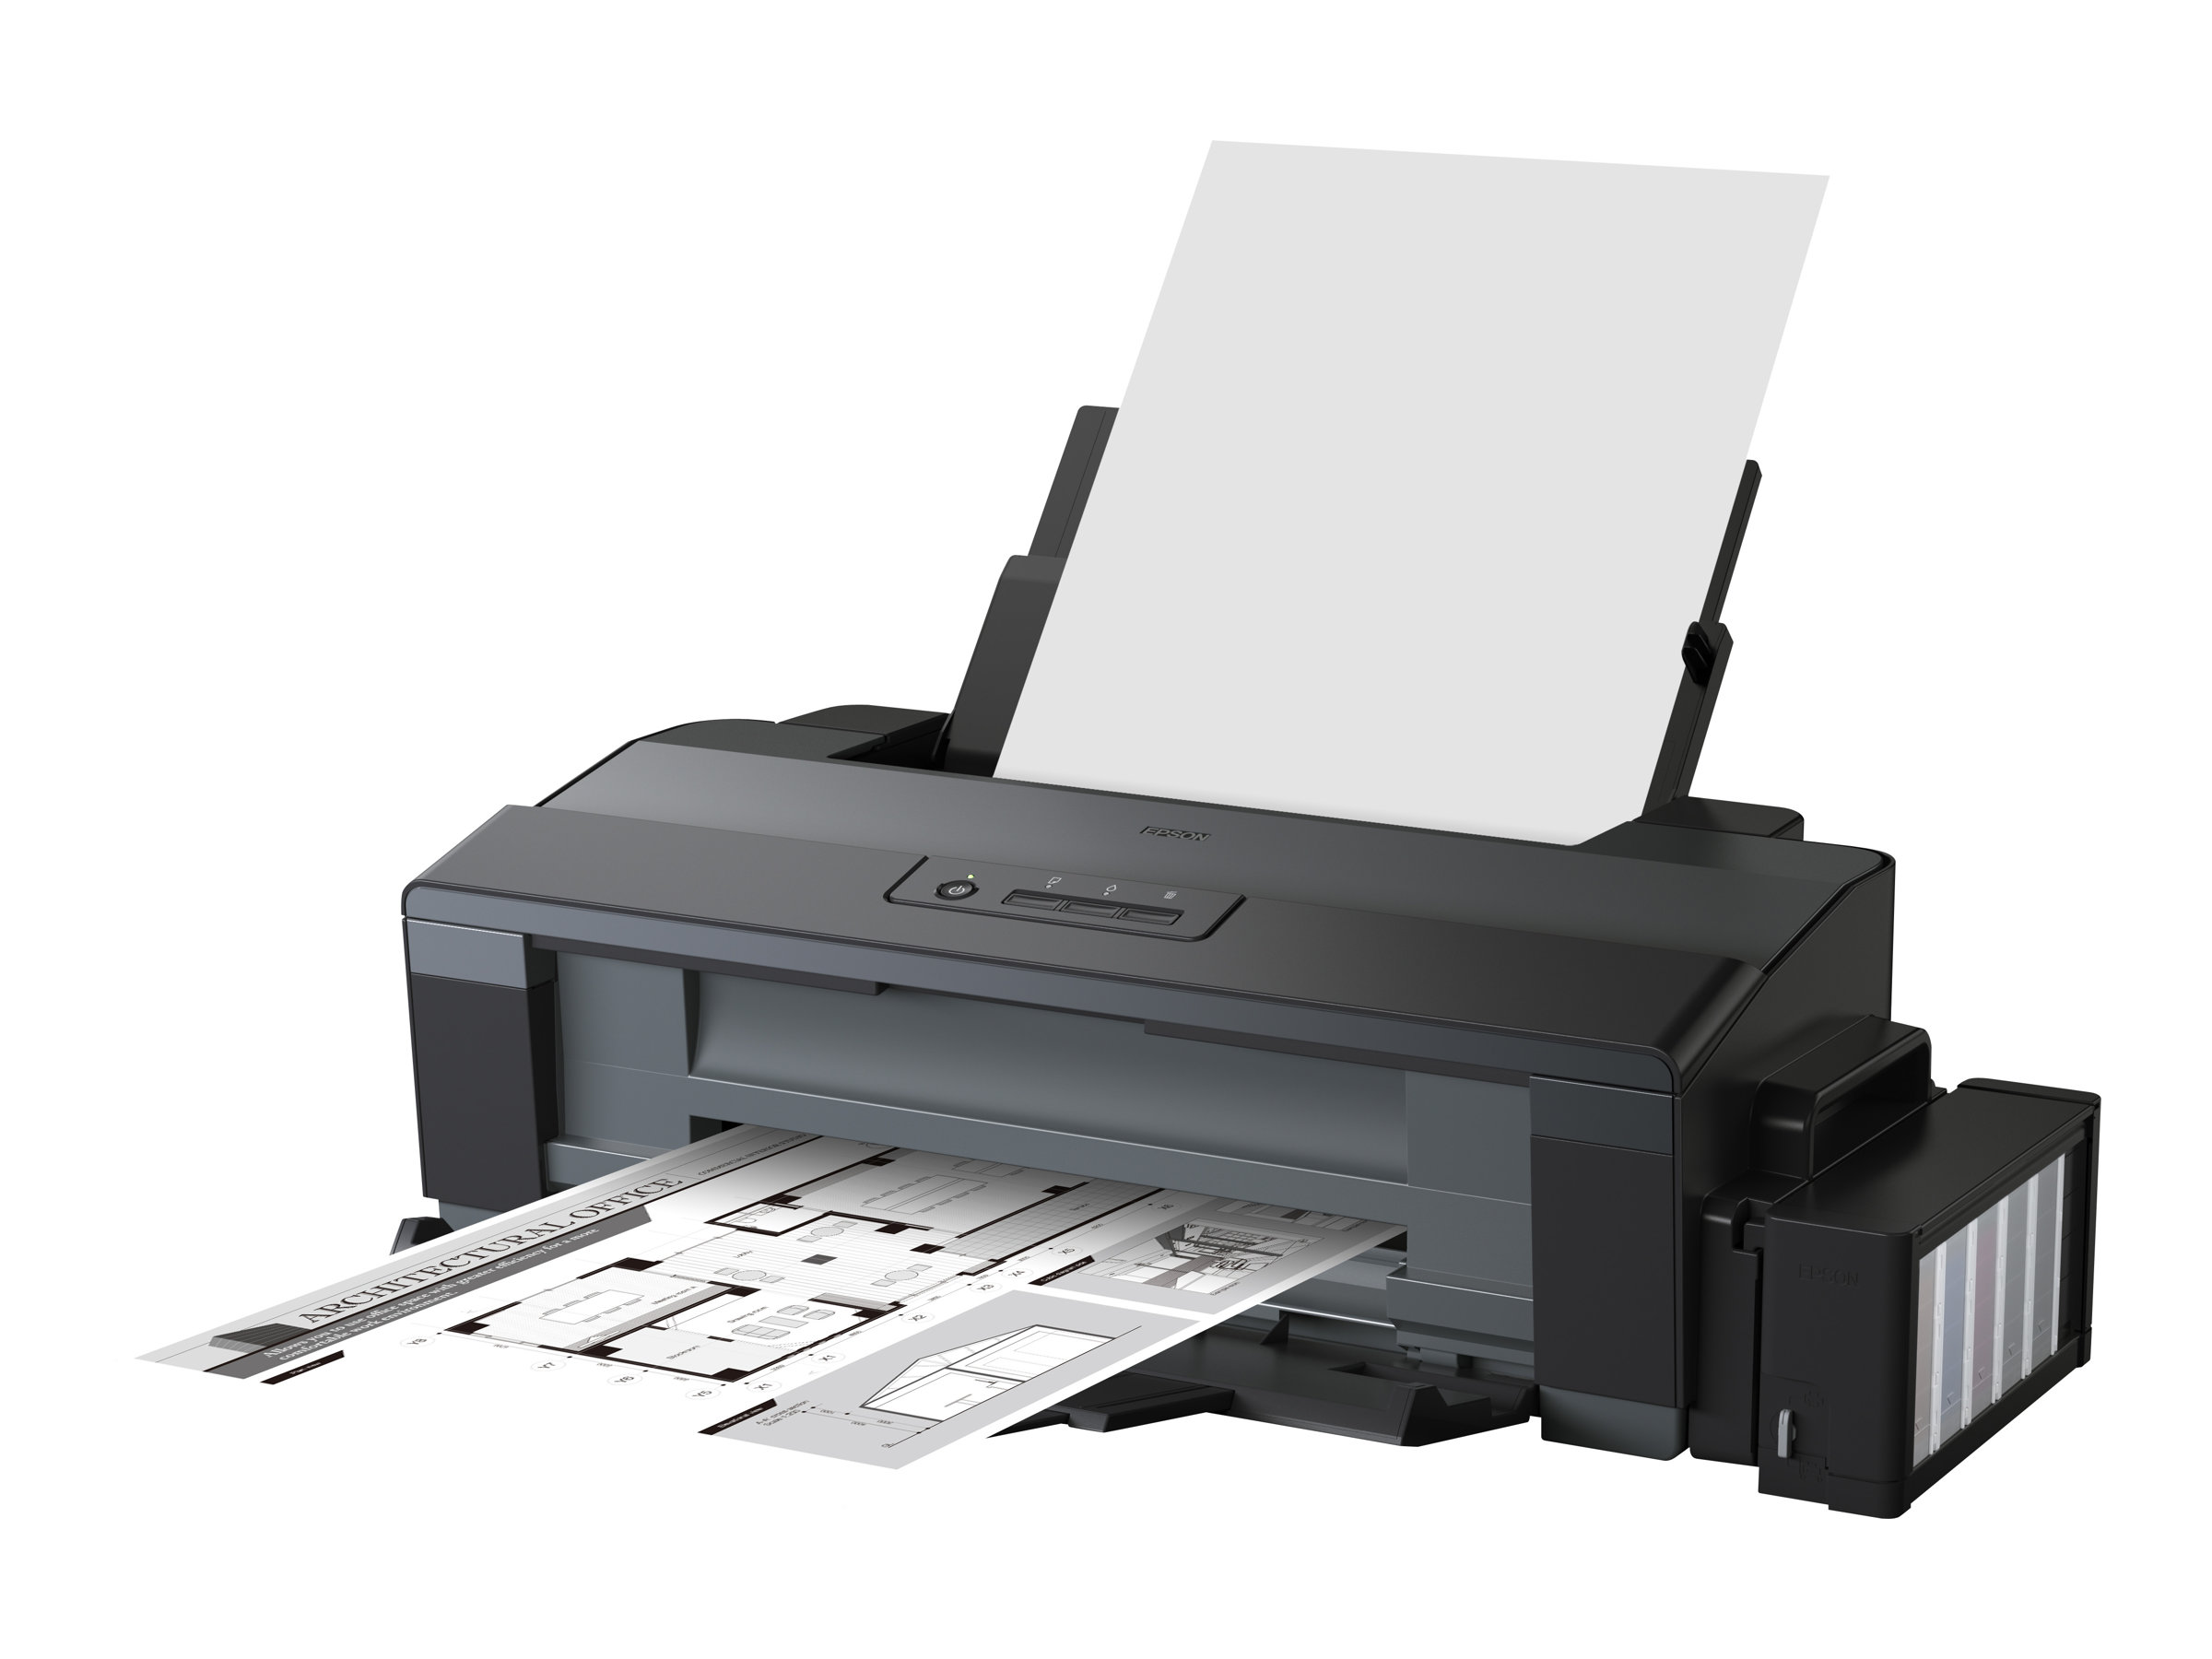 Epson ecotank et 14000 imprimante couleur jet d for Bureau vallee 64